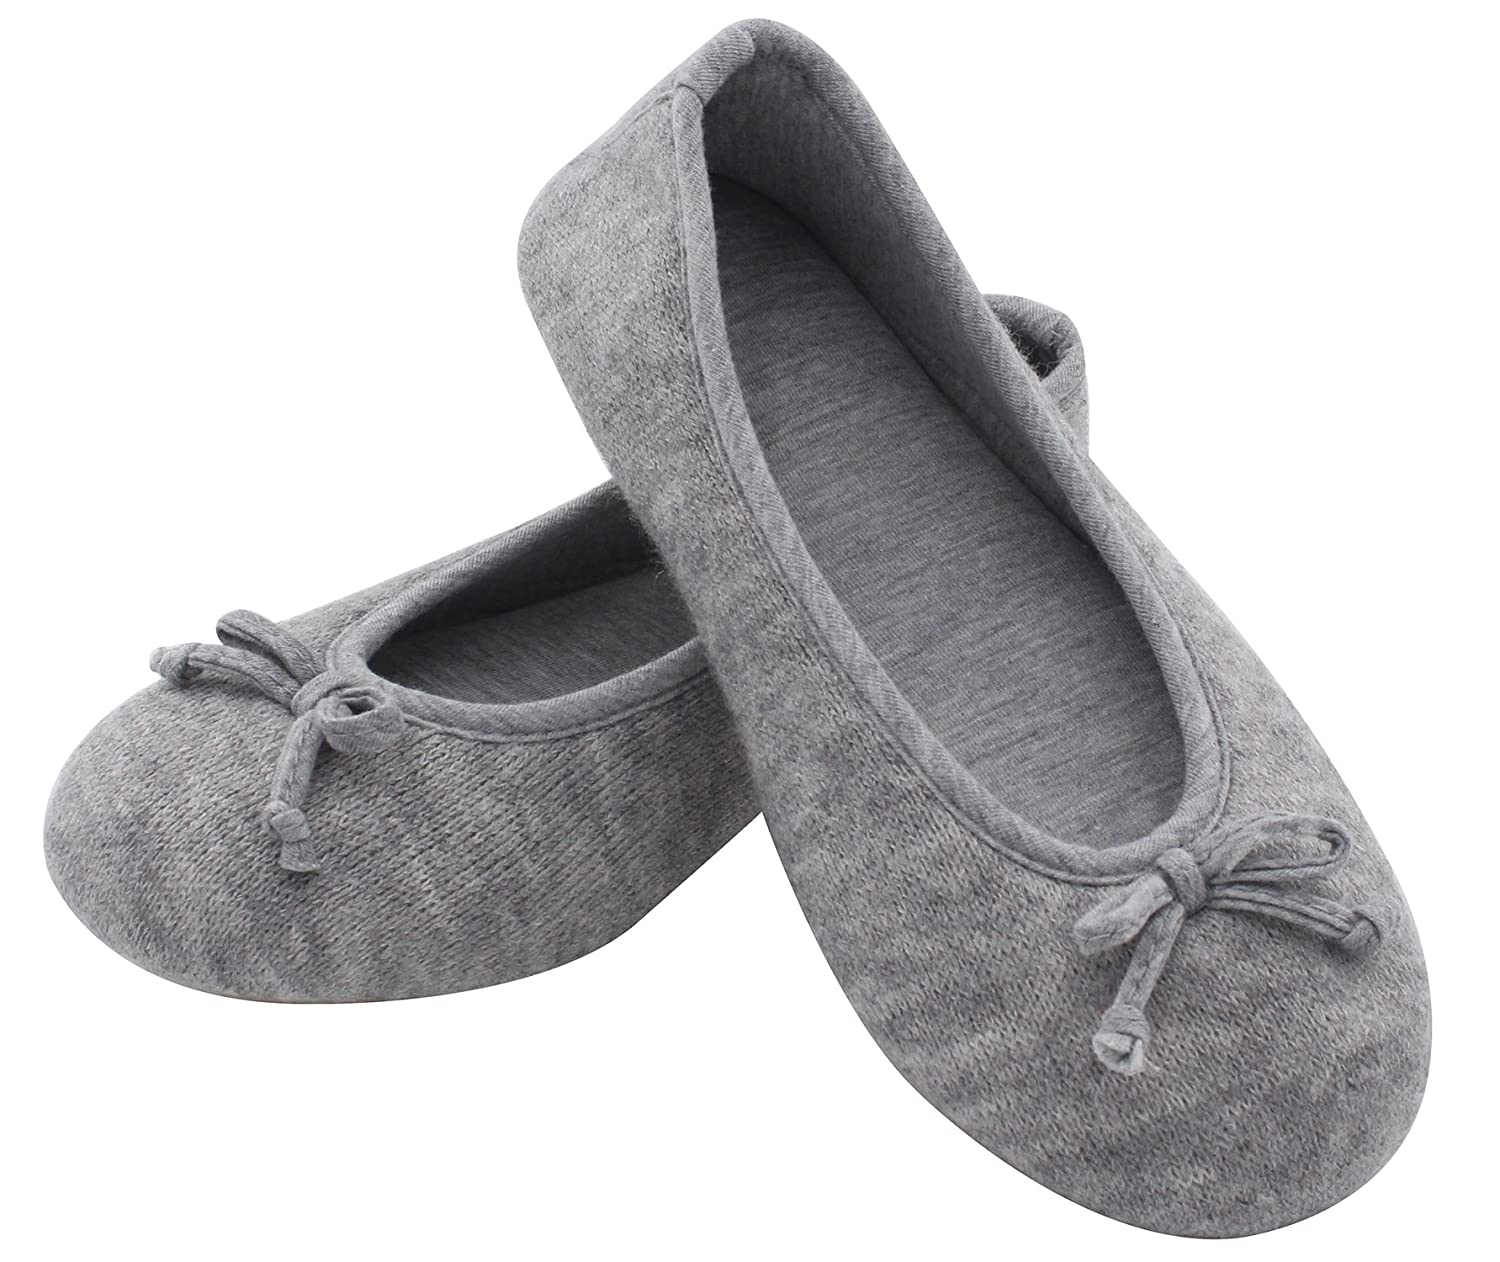 Deluxe Adult Costumes - Assassin's Creed Women's Gray Knitted Cashmere Memory Foam Slipper Shoes